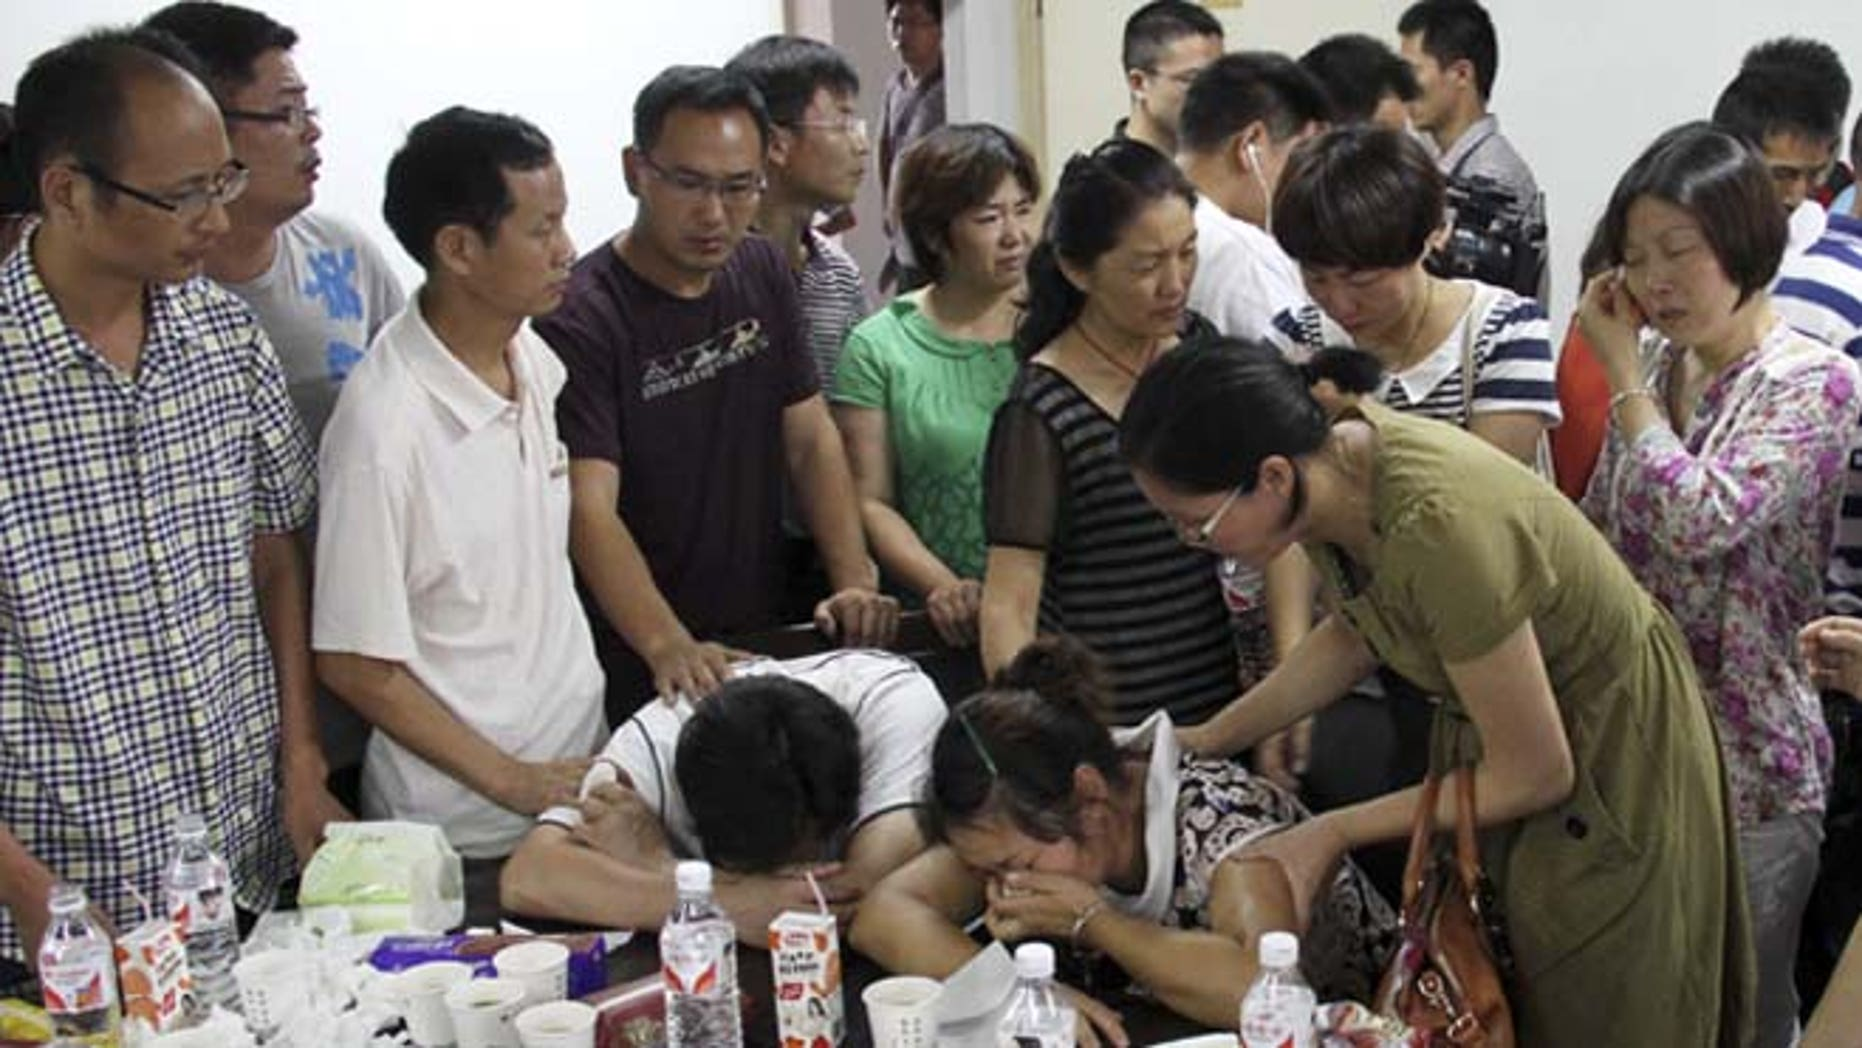 July 7, 2013: Parents of Wang Linjia, center, are comforted by parents of some other students who were on the Asiana Airlines Flight 214 that crashed at San Francisco International Airport, at Jiangshan Middle School in Jiangshan city, in eastern China's Zhejiang province. Chinese state media have identified the two people who died in the plane crash at San Francisco International Airport on Saturday as Ye Mengyuan and Wang Linjia, students at Jiangshan Middle School in China's eastern Zhejiang province.